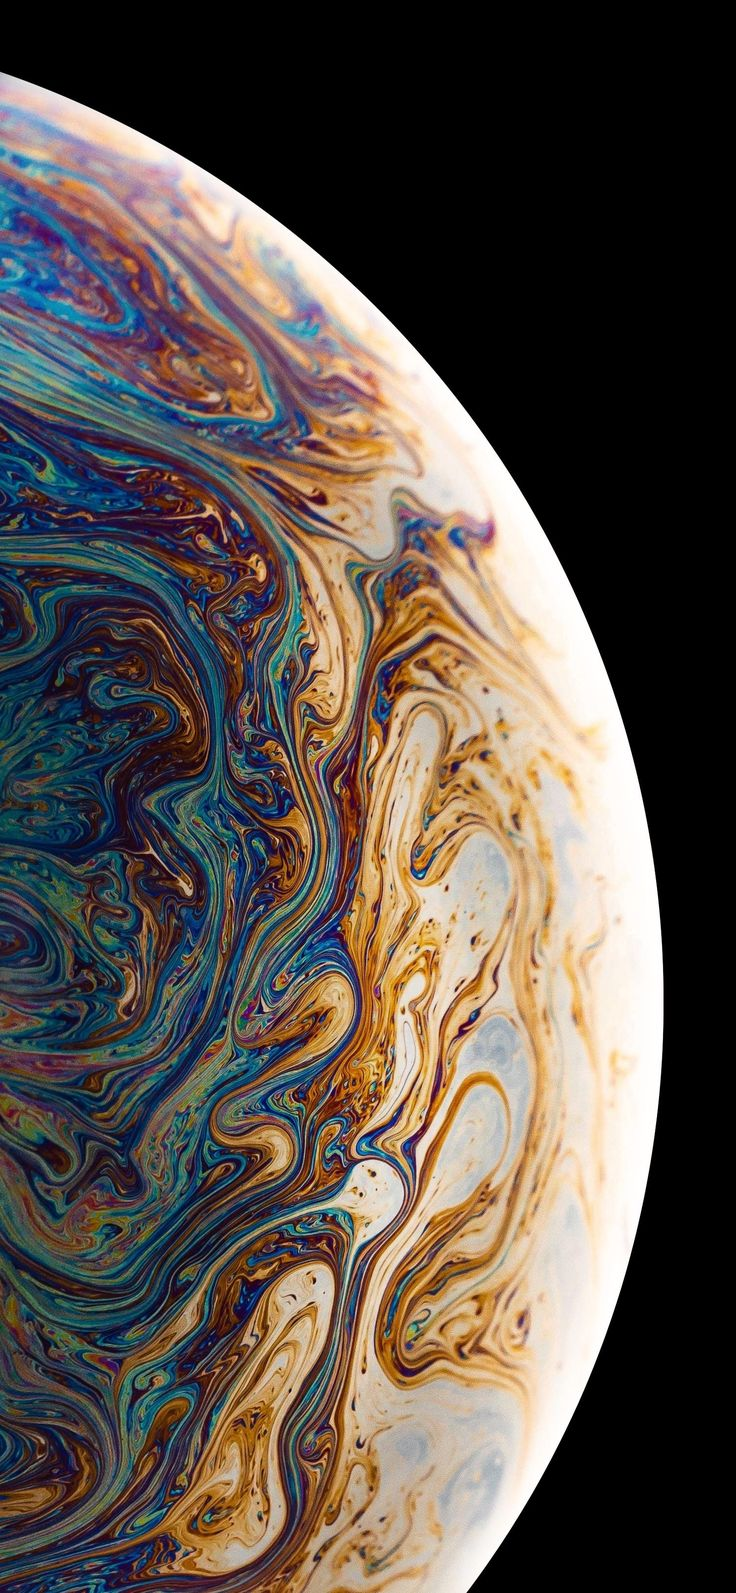 New IPHONE X stock wallpaper Colorful wallpaper, Iphone